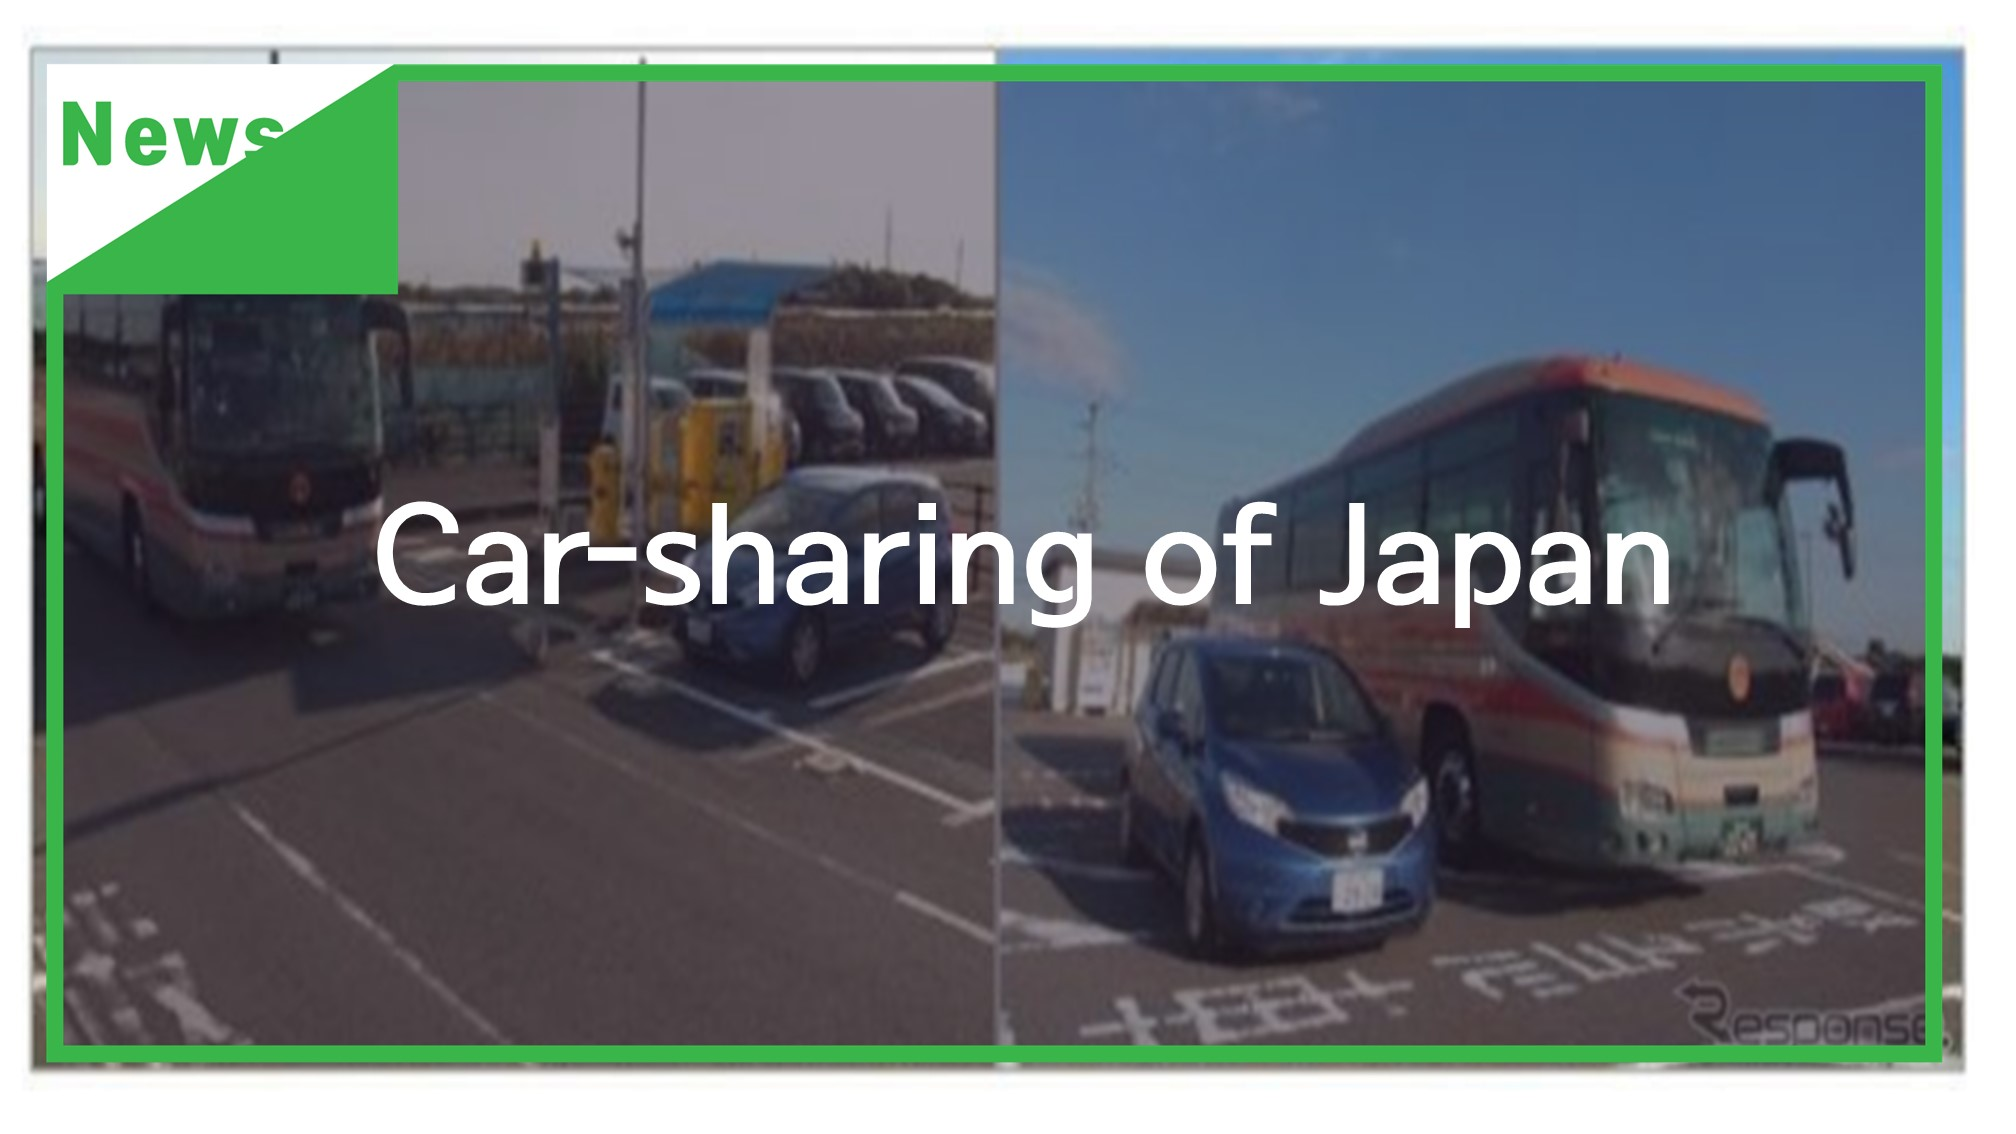 [Resources] Car-sharing of Japan